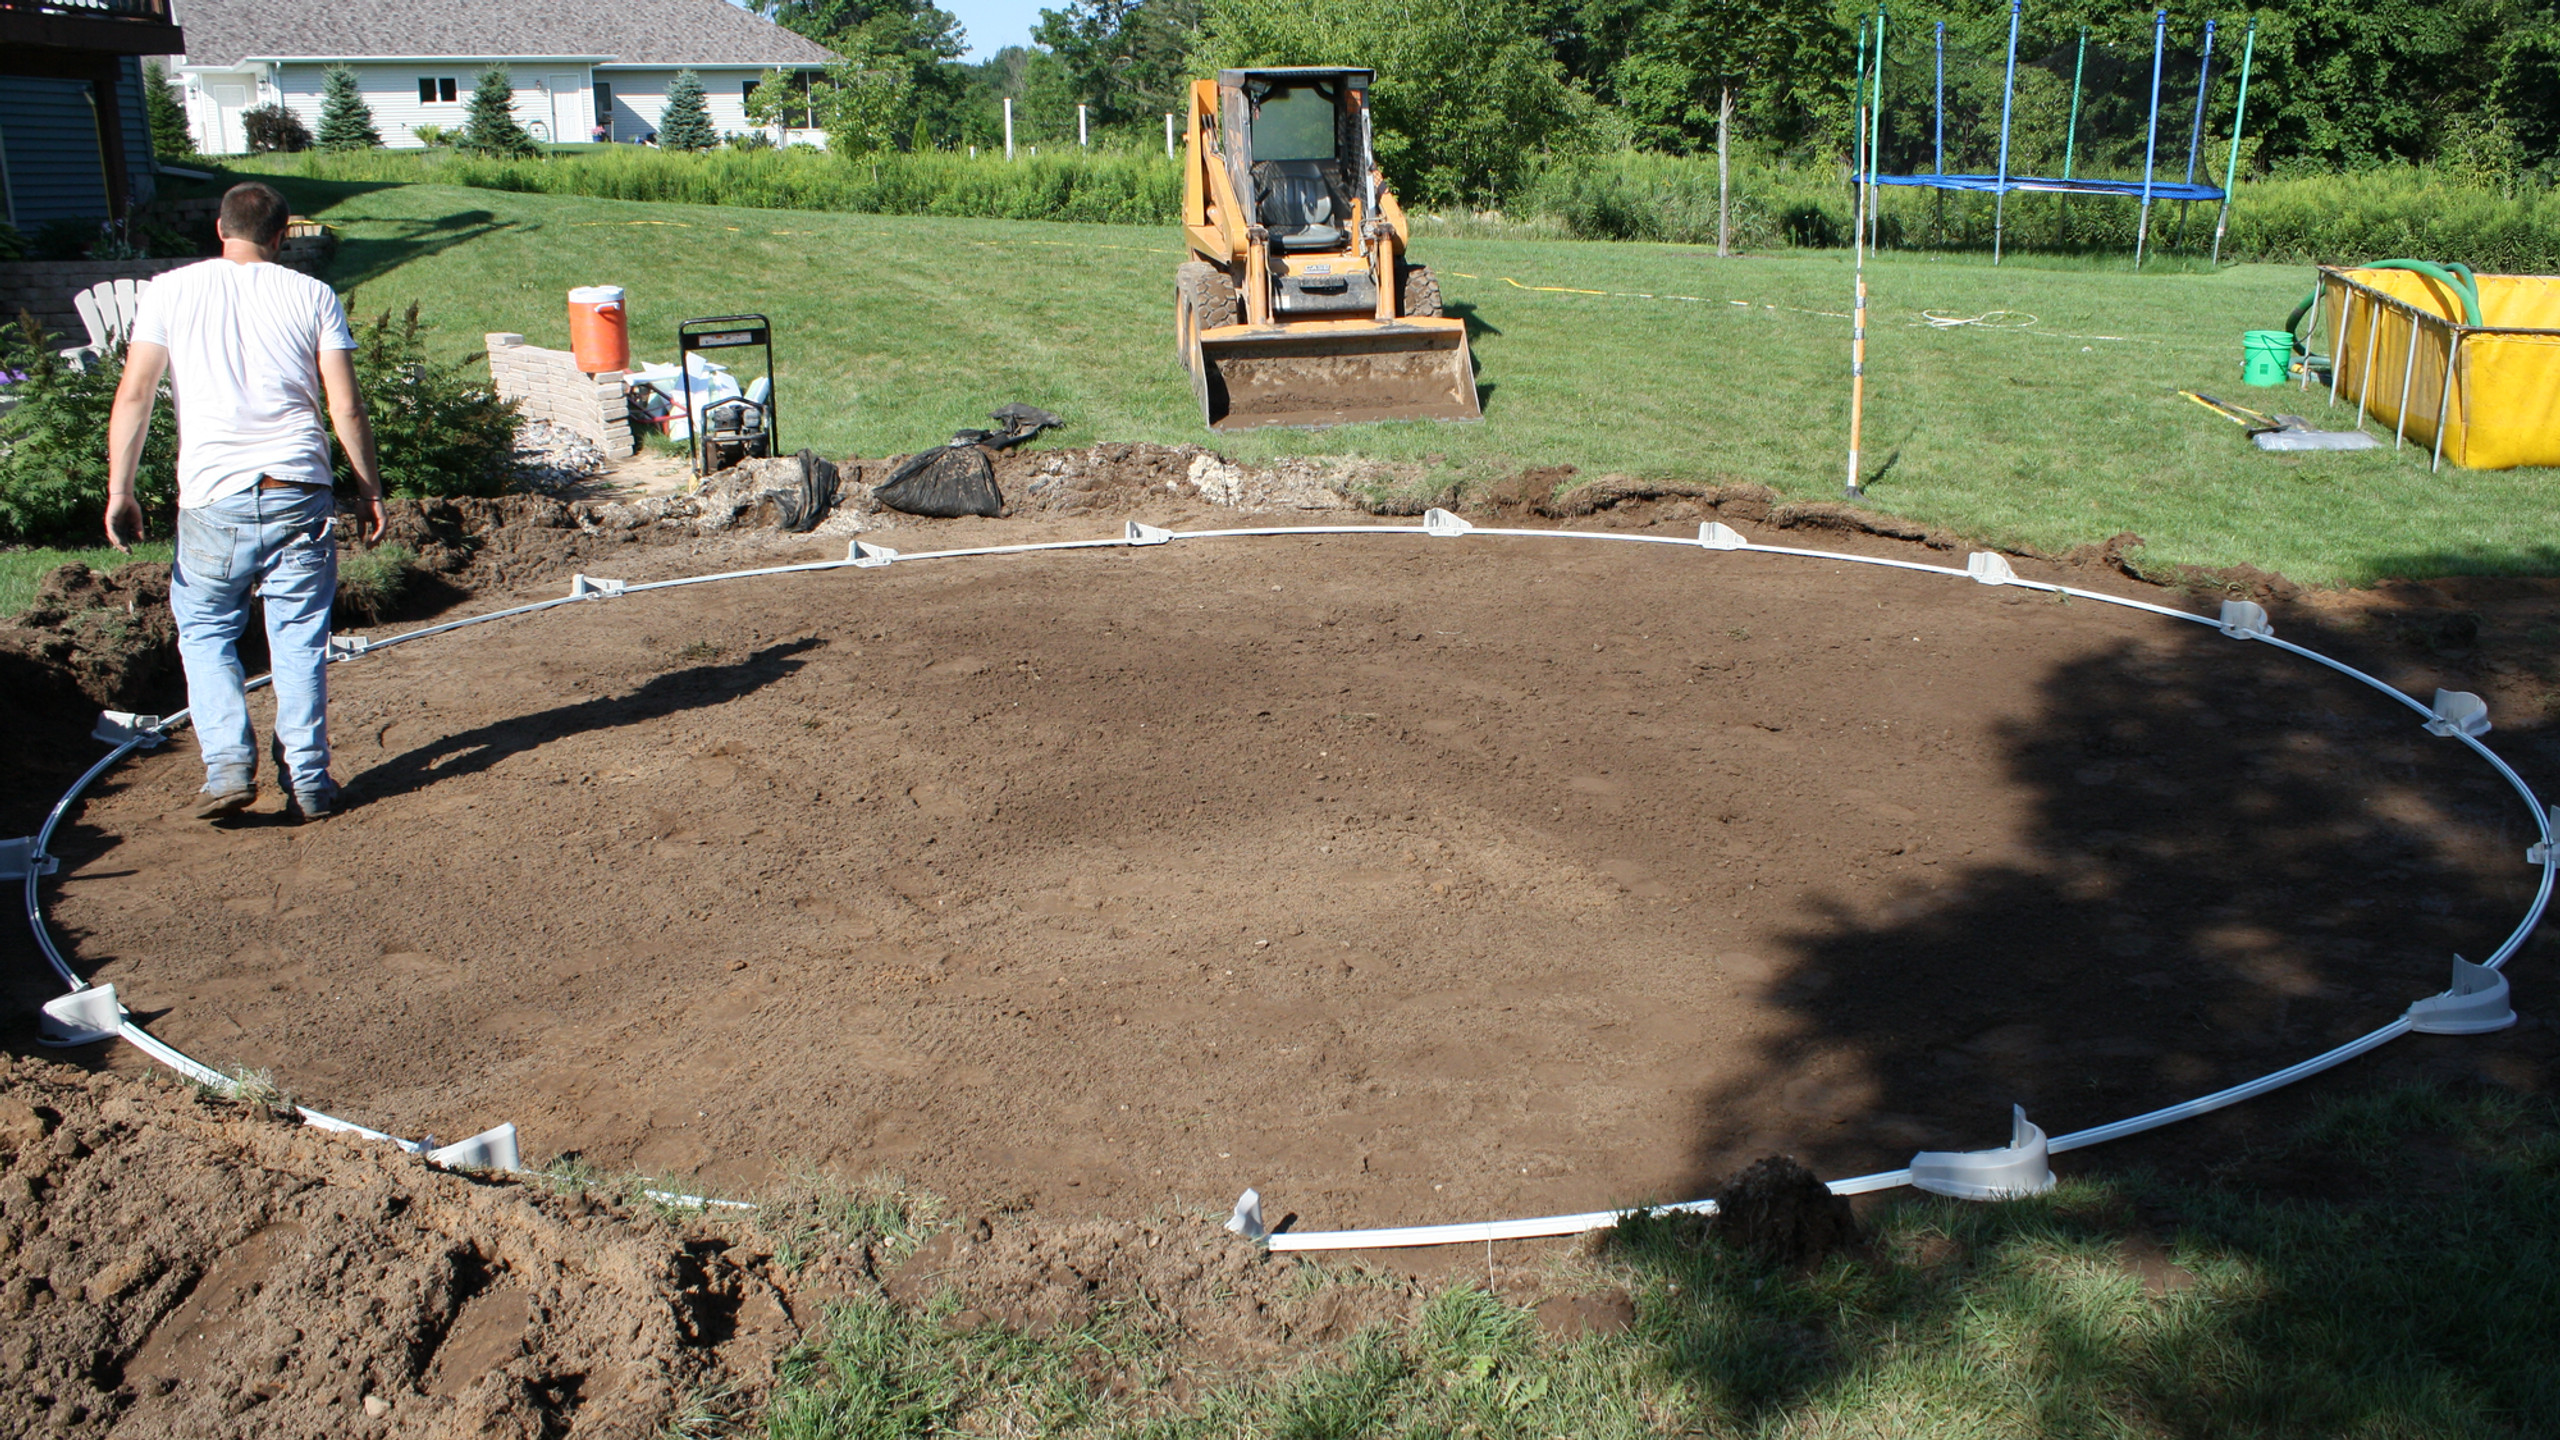 At this point we assemble the bottom track and take a series of measurements to ensure the pool is perfectly round.